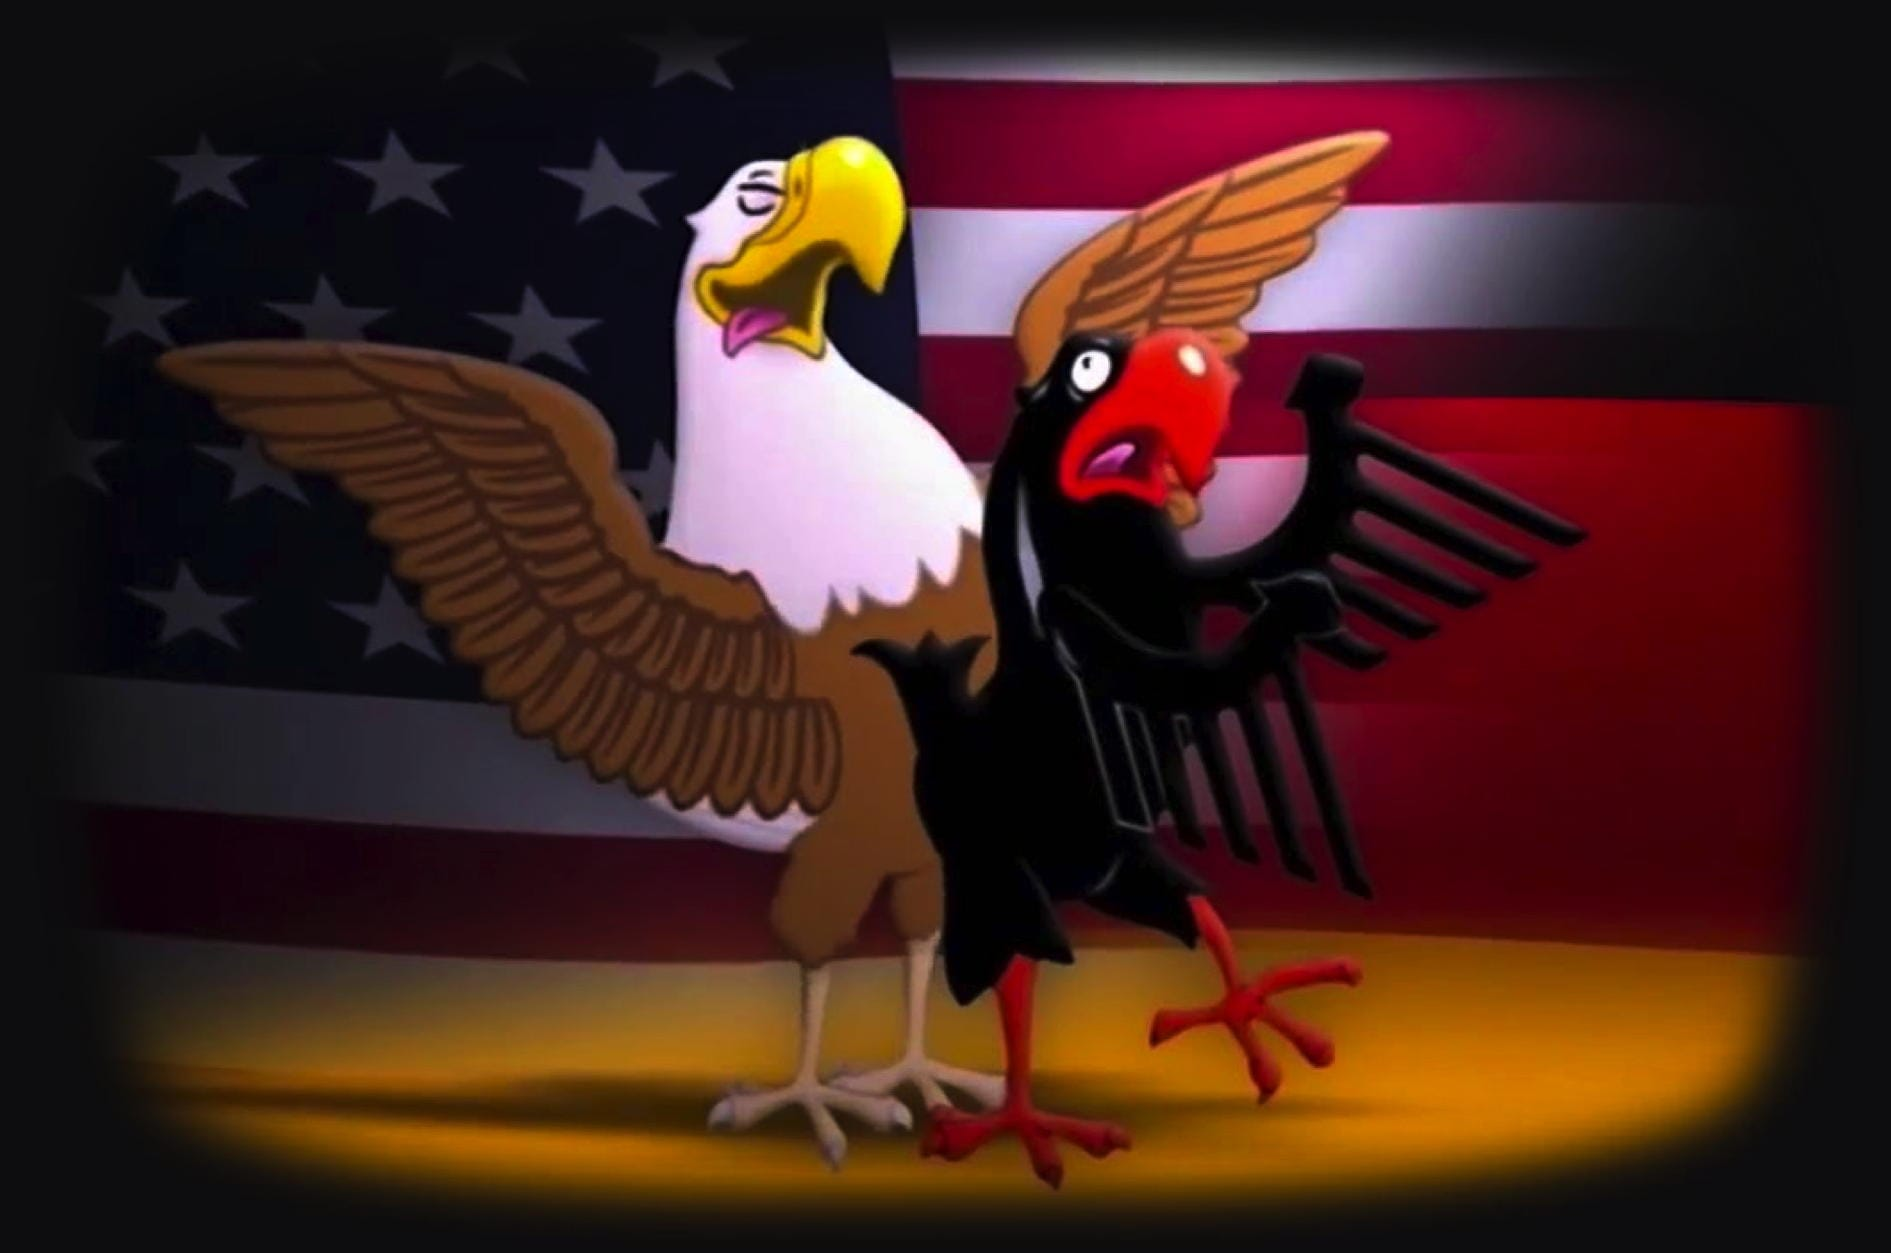 us_eagle_fucks_german_eagle_echte_freundschaft_deutschland_germany_usa_adler_anstalt